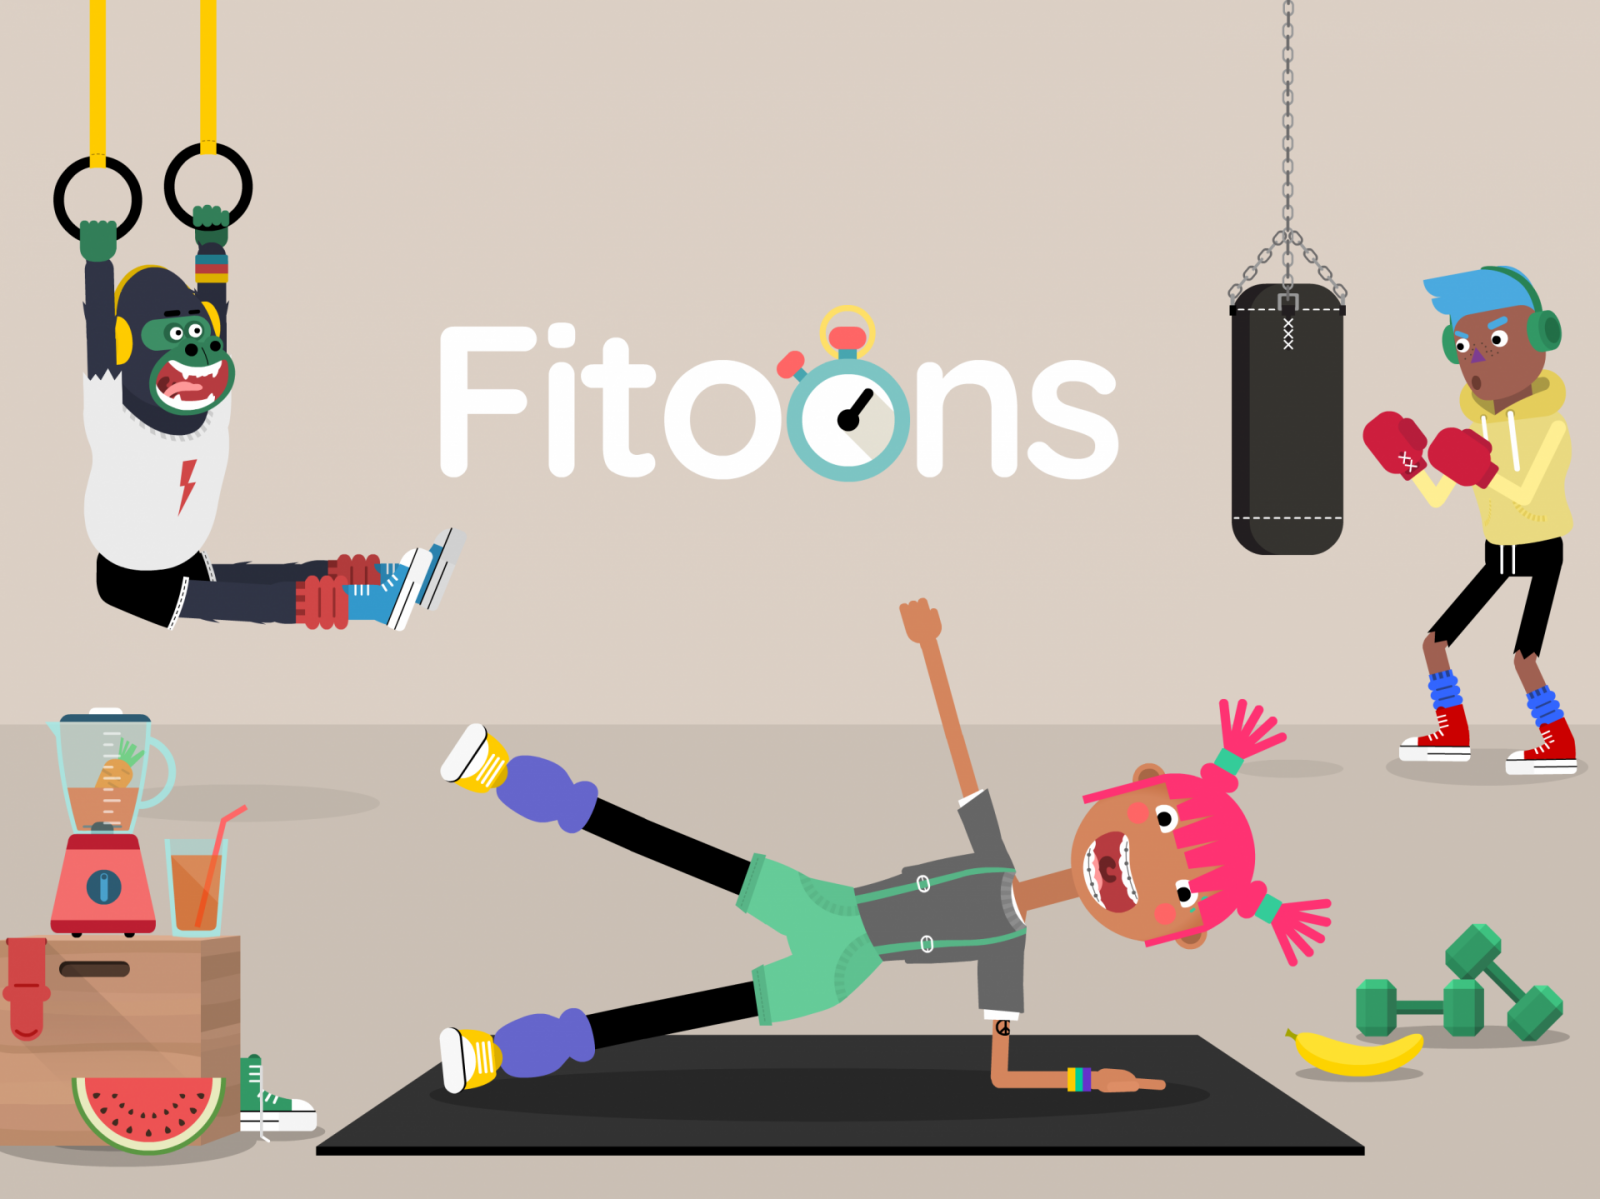 The Fitoons App